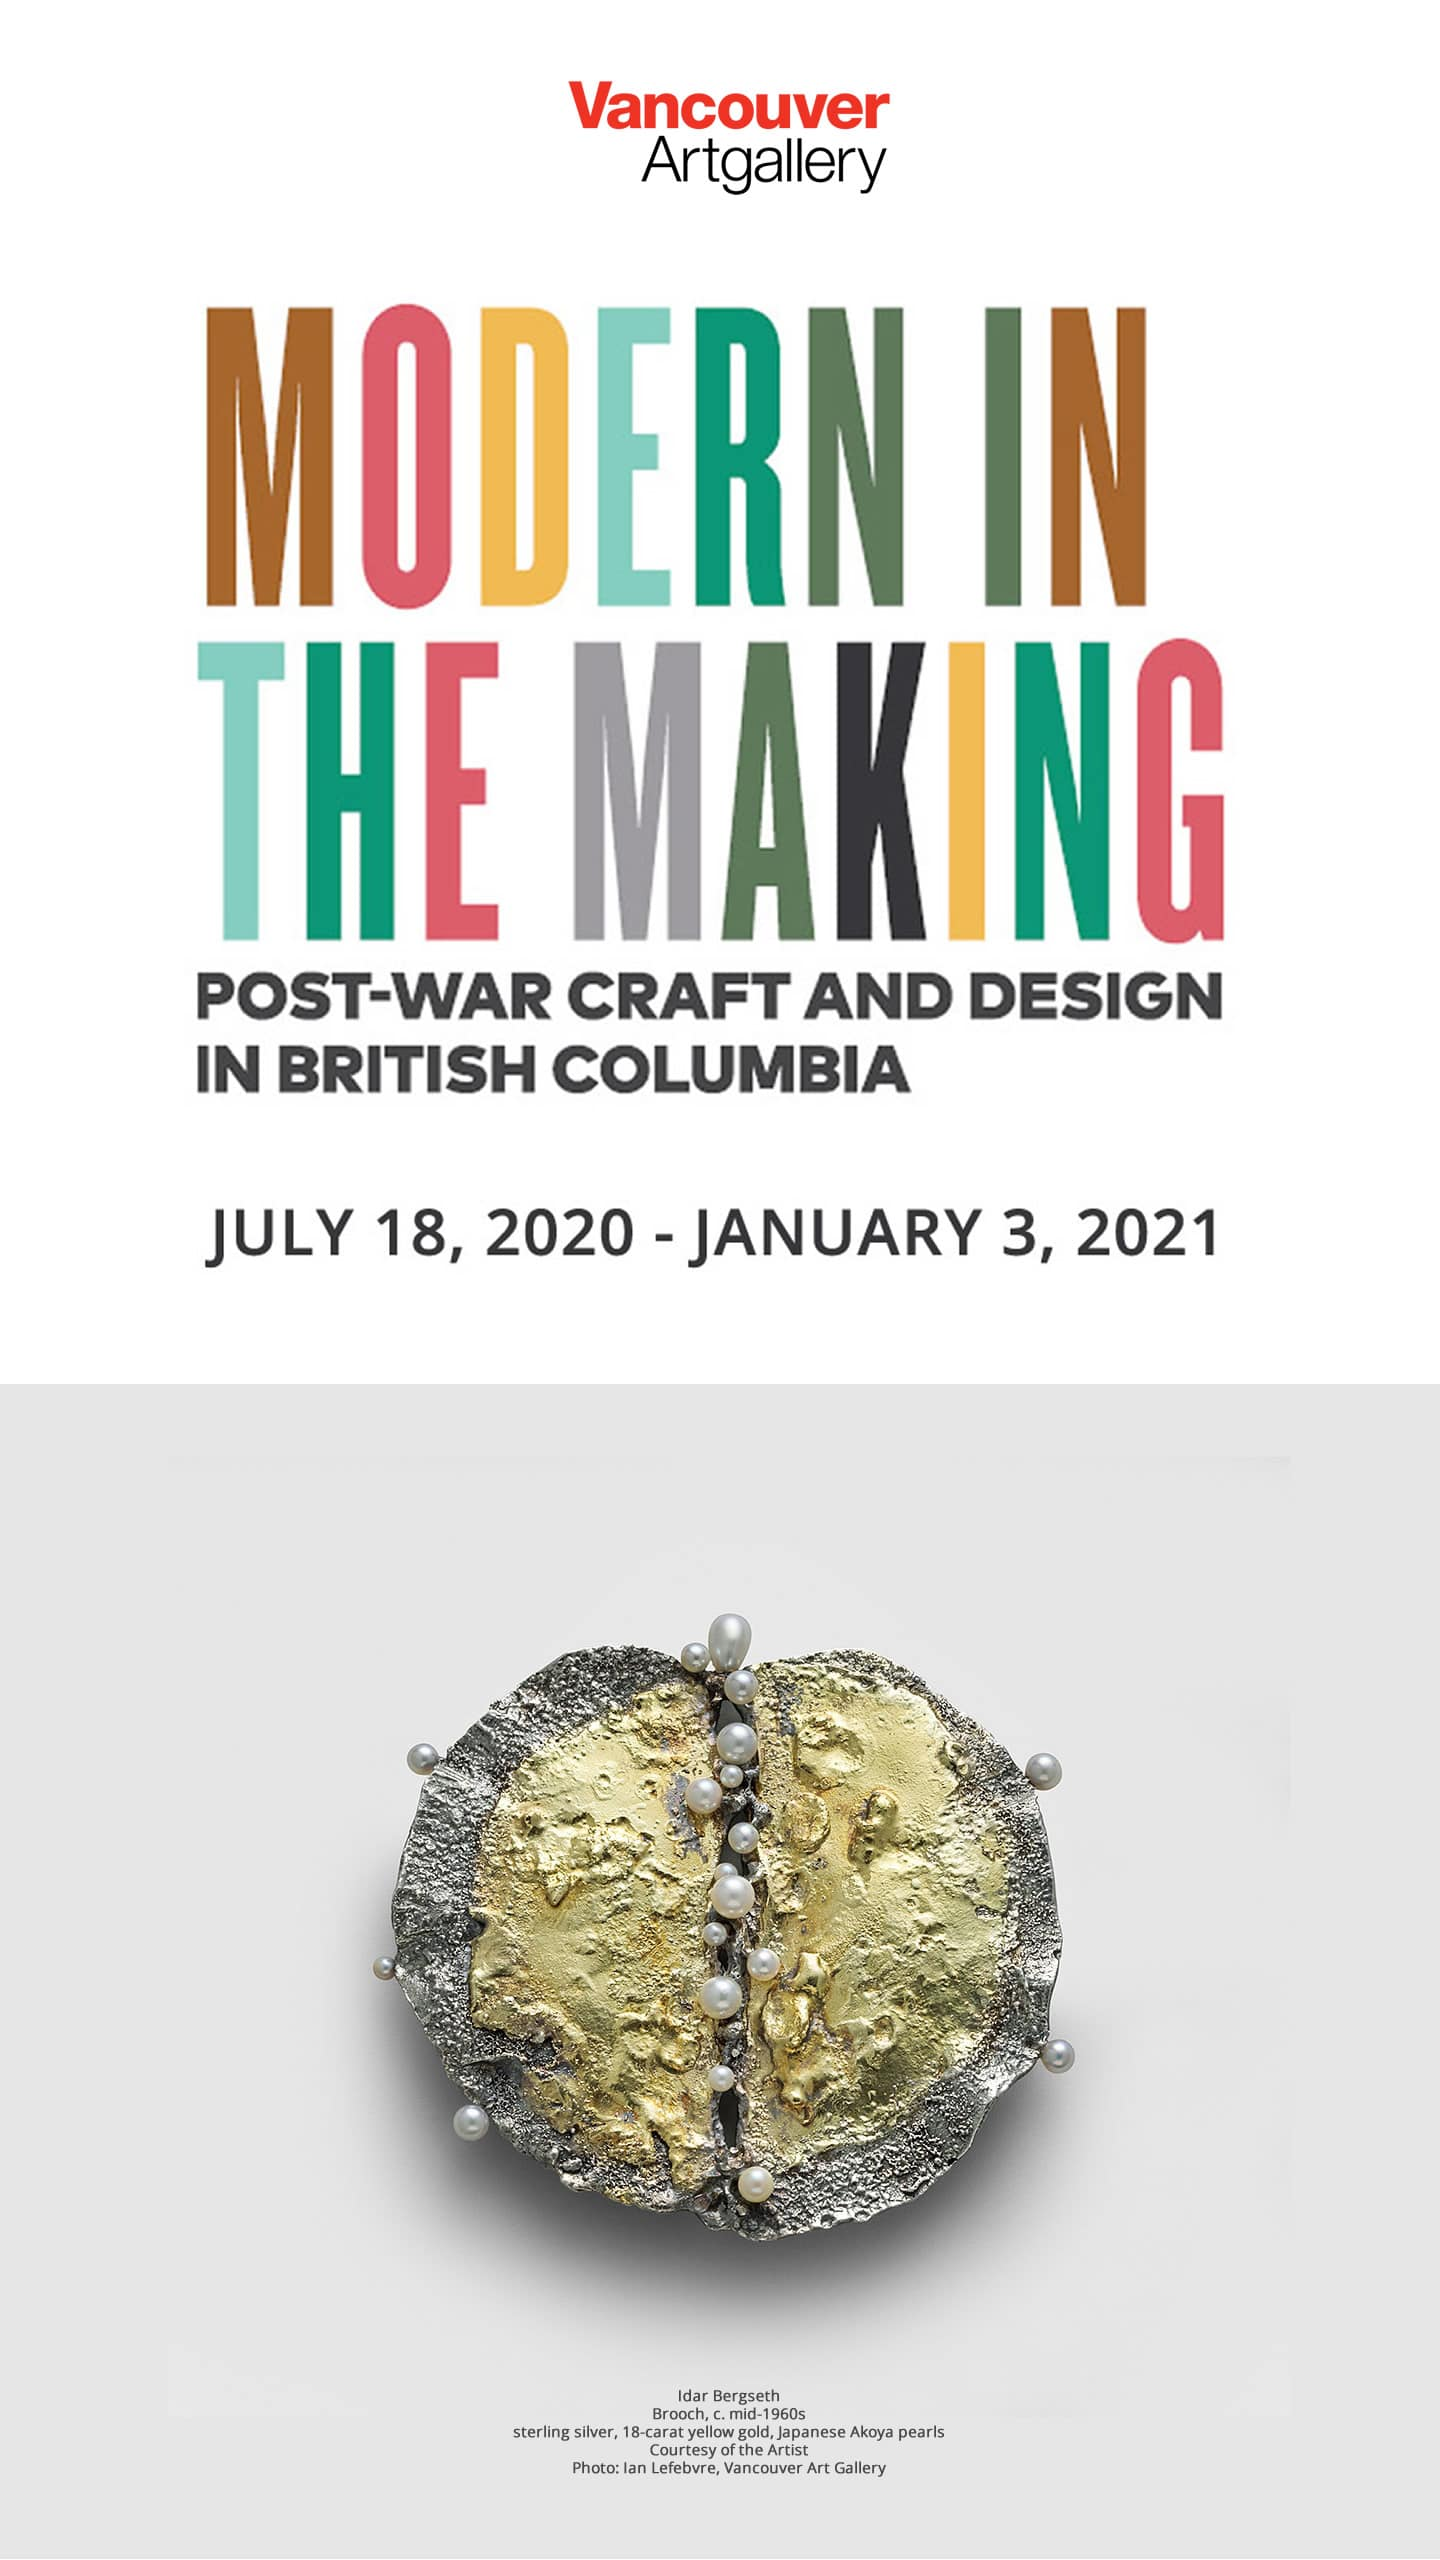 vancouver-art-gallery-modern-in-the-making-exhibition-jewellery-brooch-artist-Idar-Bergseth